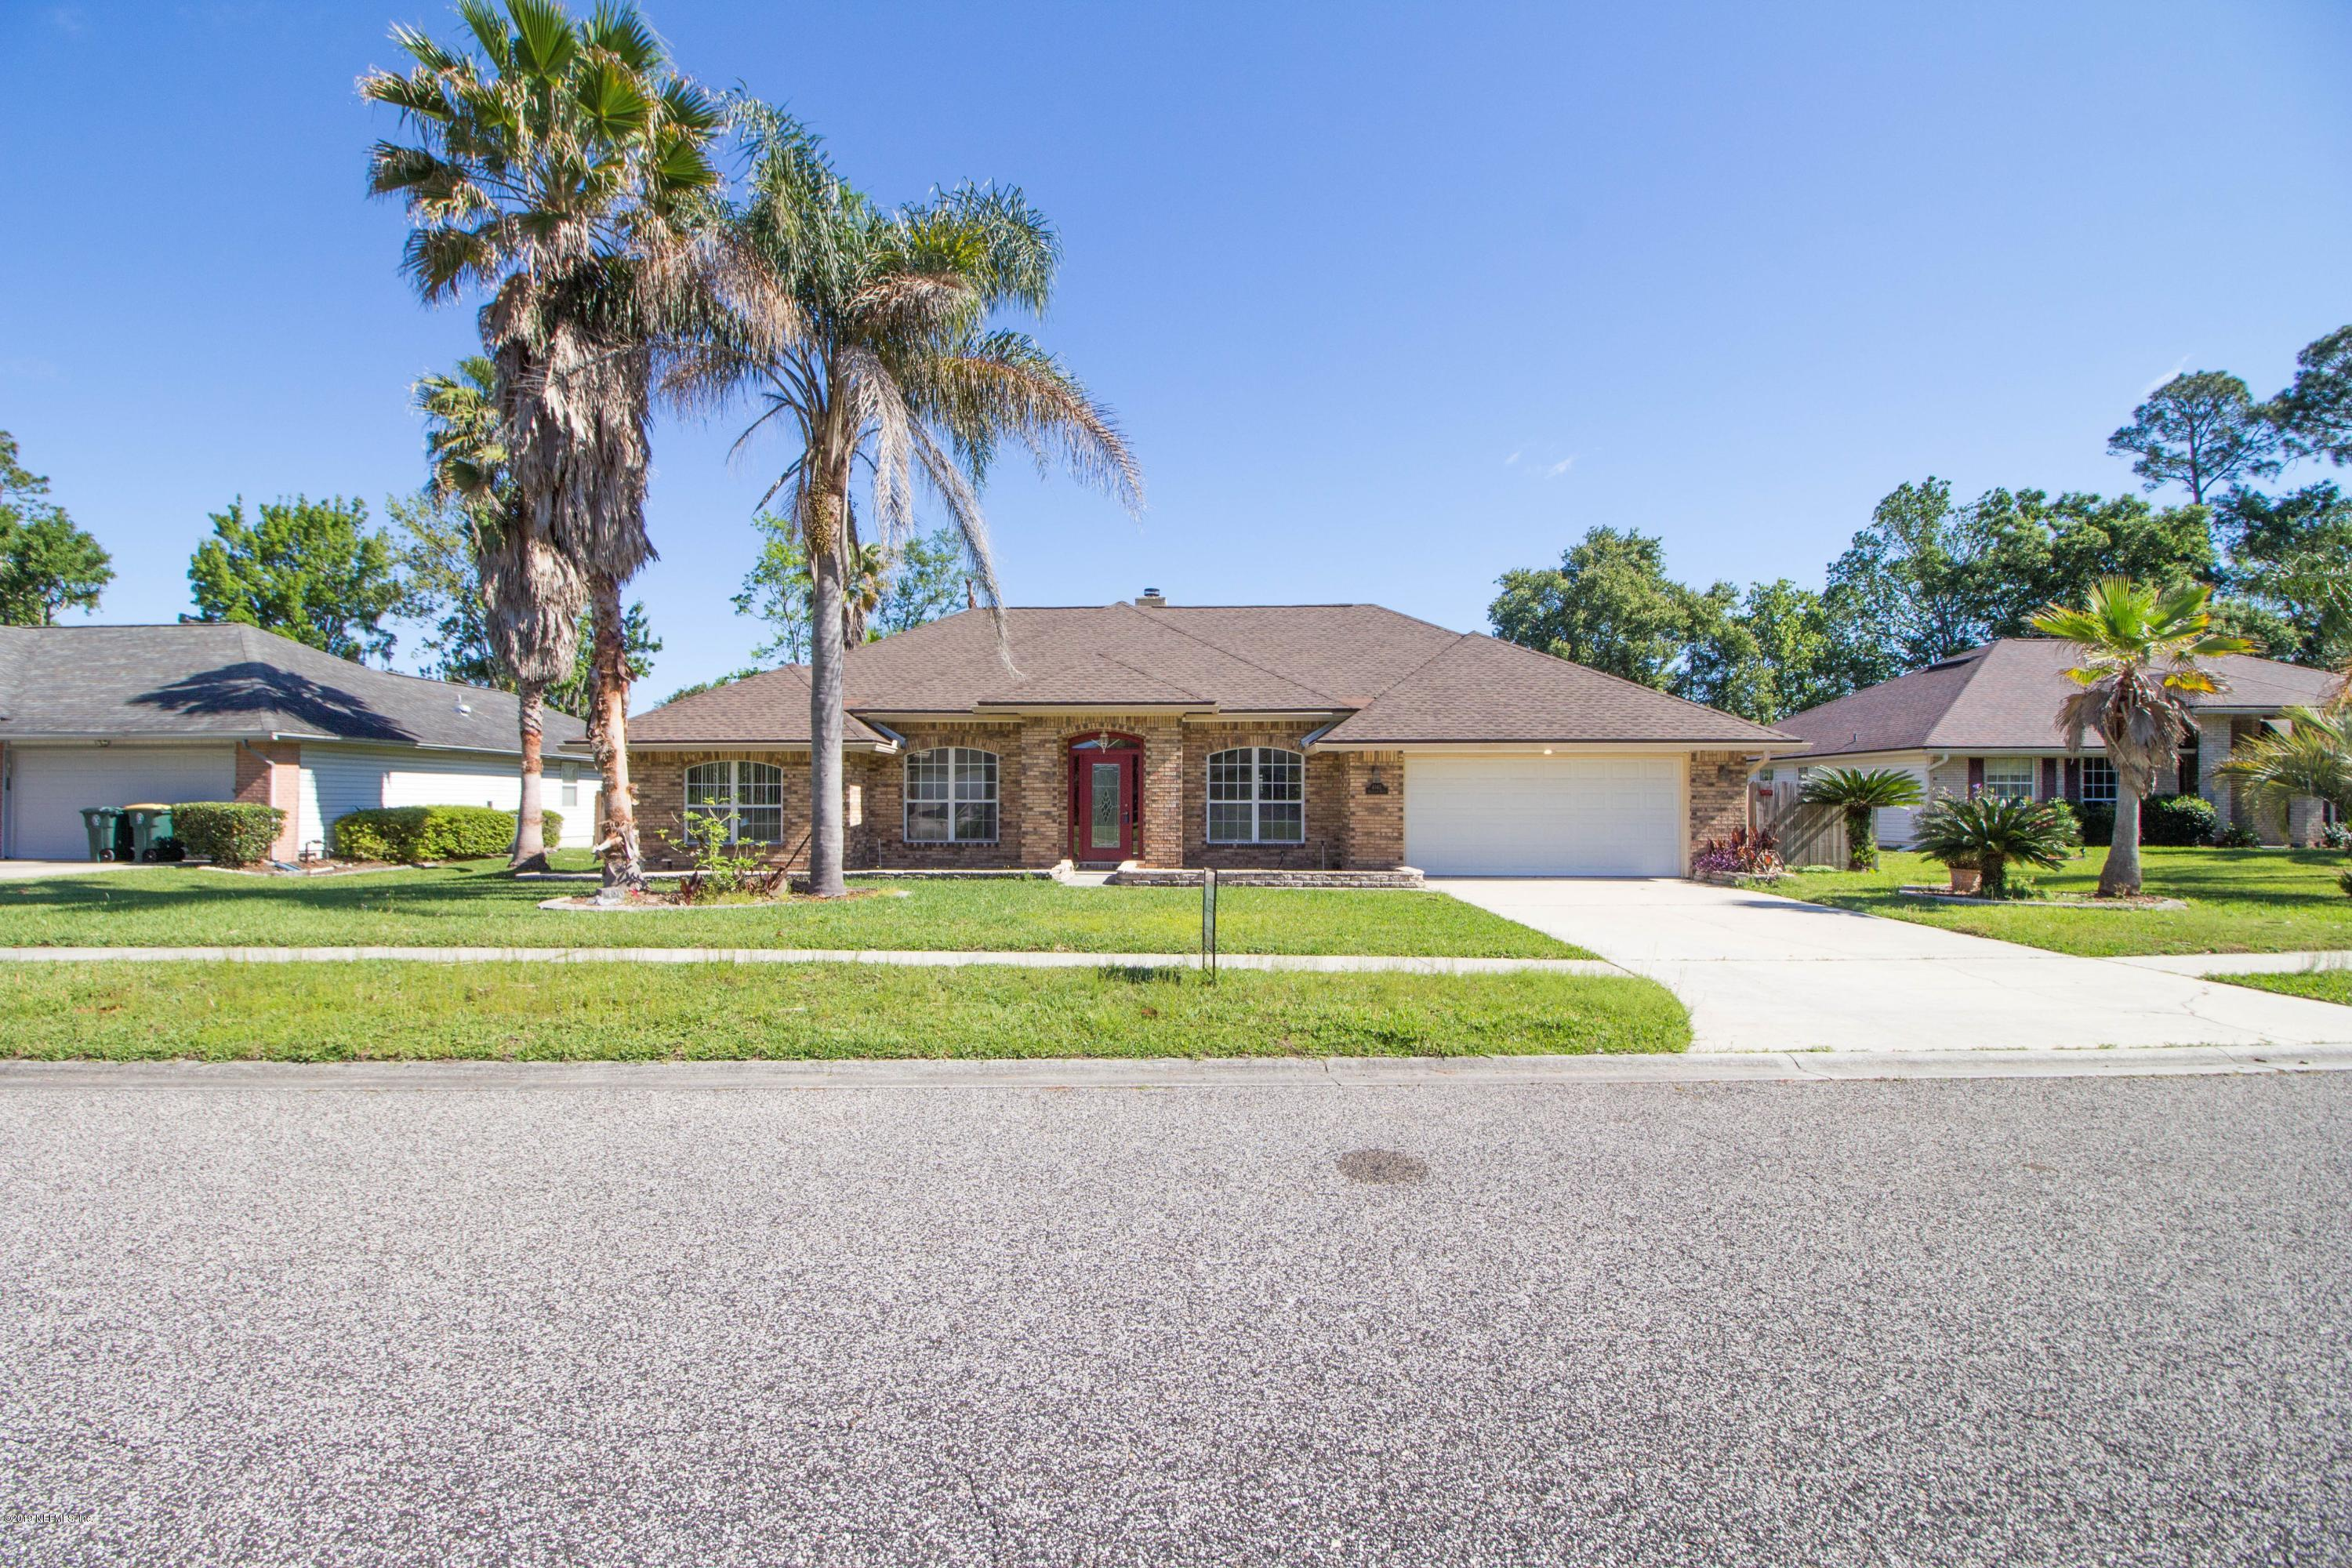 4343  HOLLYGATE DR, Julington Creek in DUVAL County, FL 32258 Home for Sale